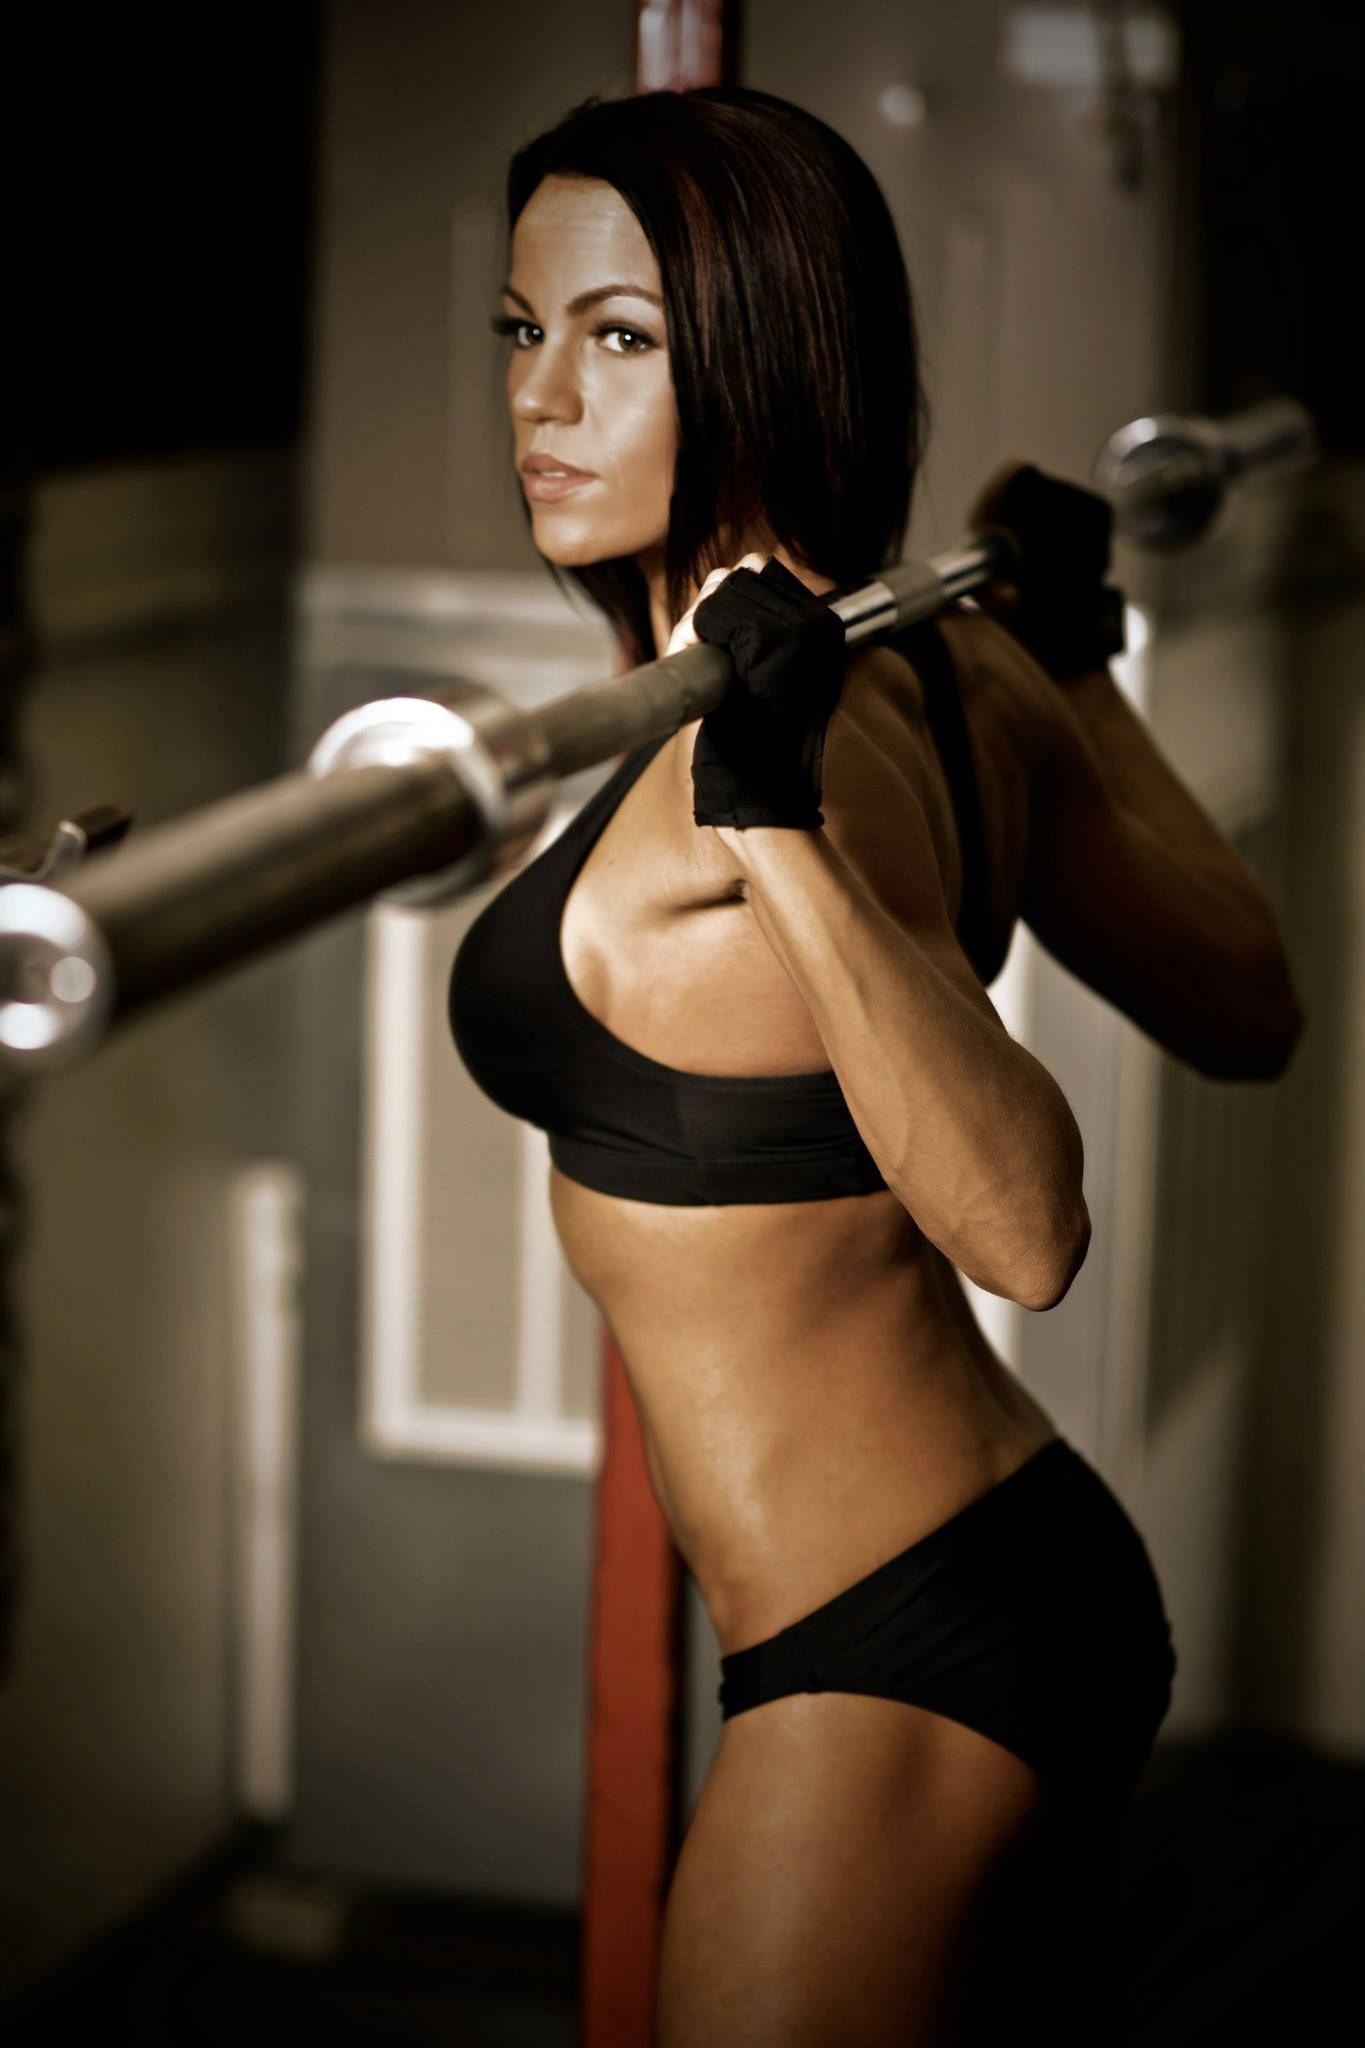 1000+ images about Shoot Ideas - Fitness on Pinterest | Fitness ...